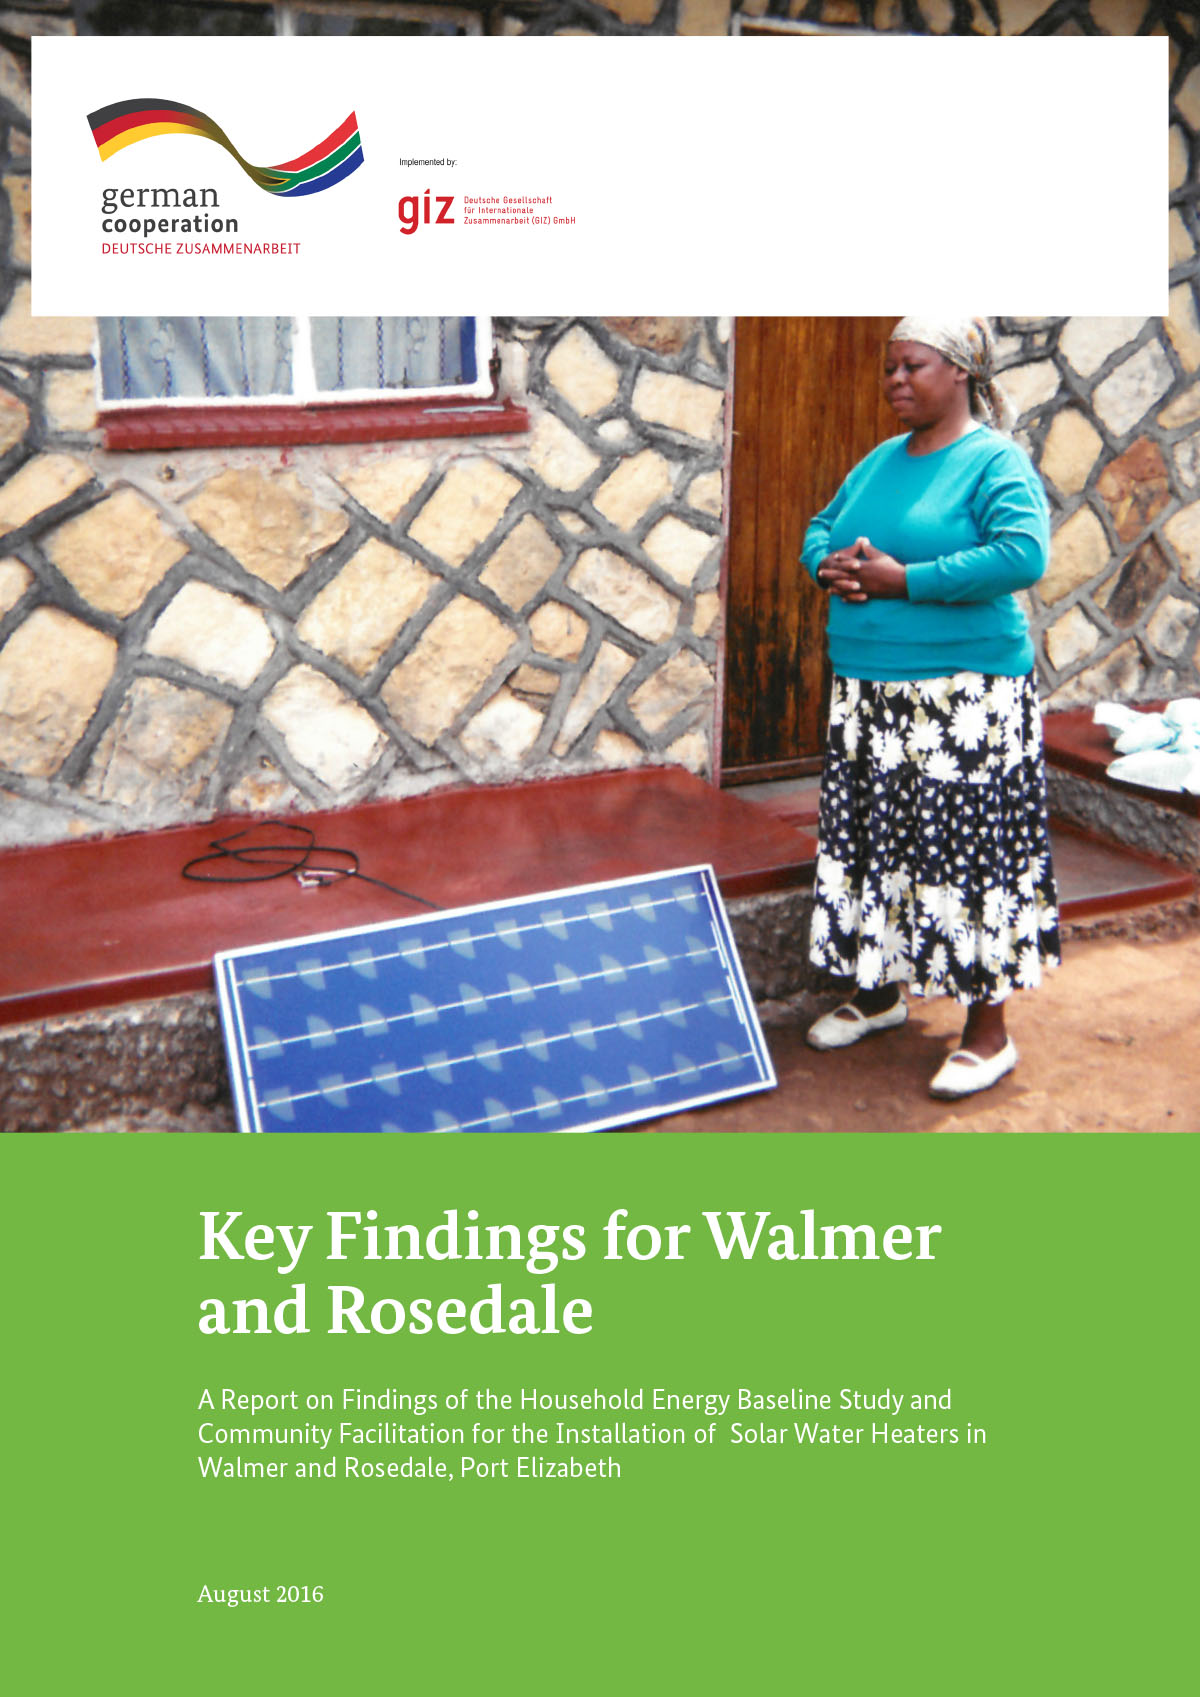 Household Energy Baseline Study and Community Facilitation for the Installation of Solar Water Heaters in Walmer and Rosedale, Port Elizabeth